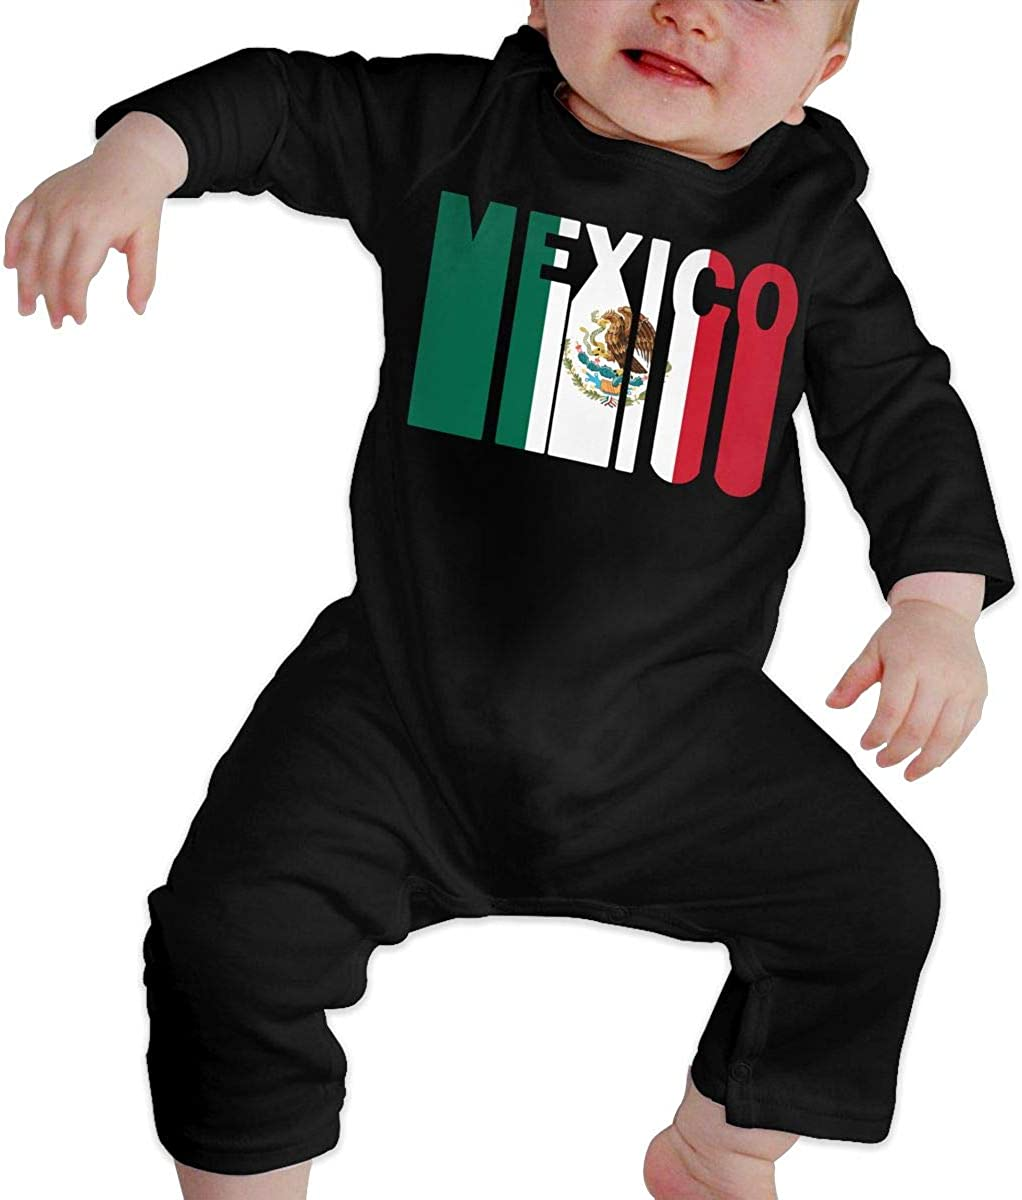 YELTY6F Retro Mexico Flag-1 Printed Newborn Baby Boy Girl One-Piece Suit Long Sleeve Rompers Black